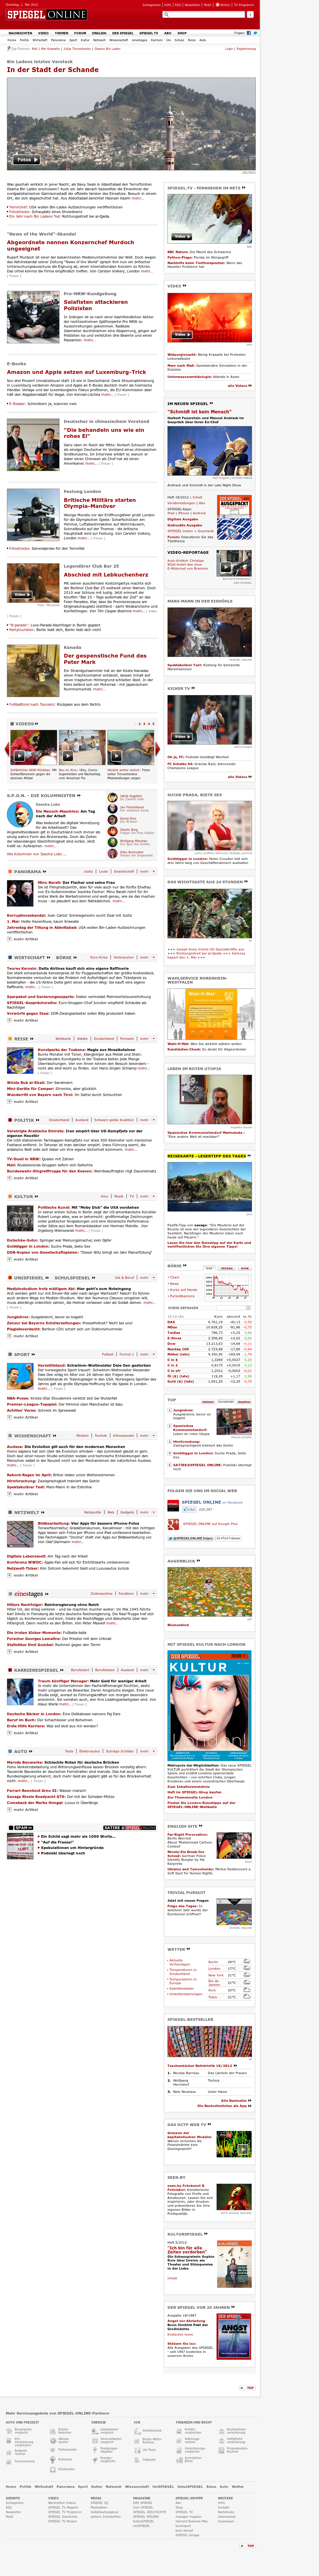 Spiegel Online at Tuesday May 1, 2012, 1:13 p.m. UTC